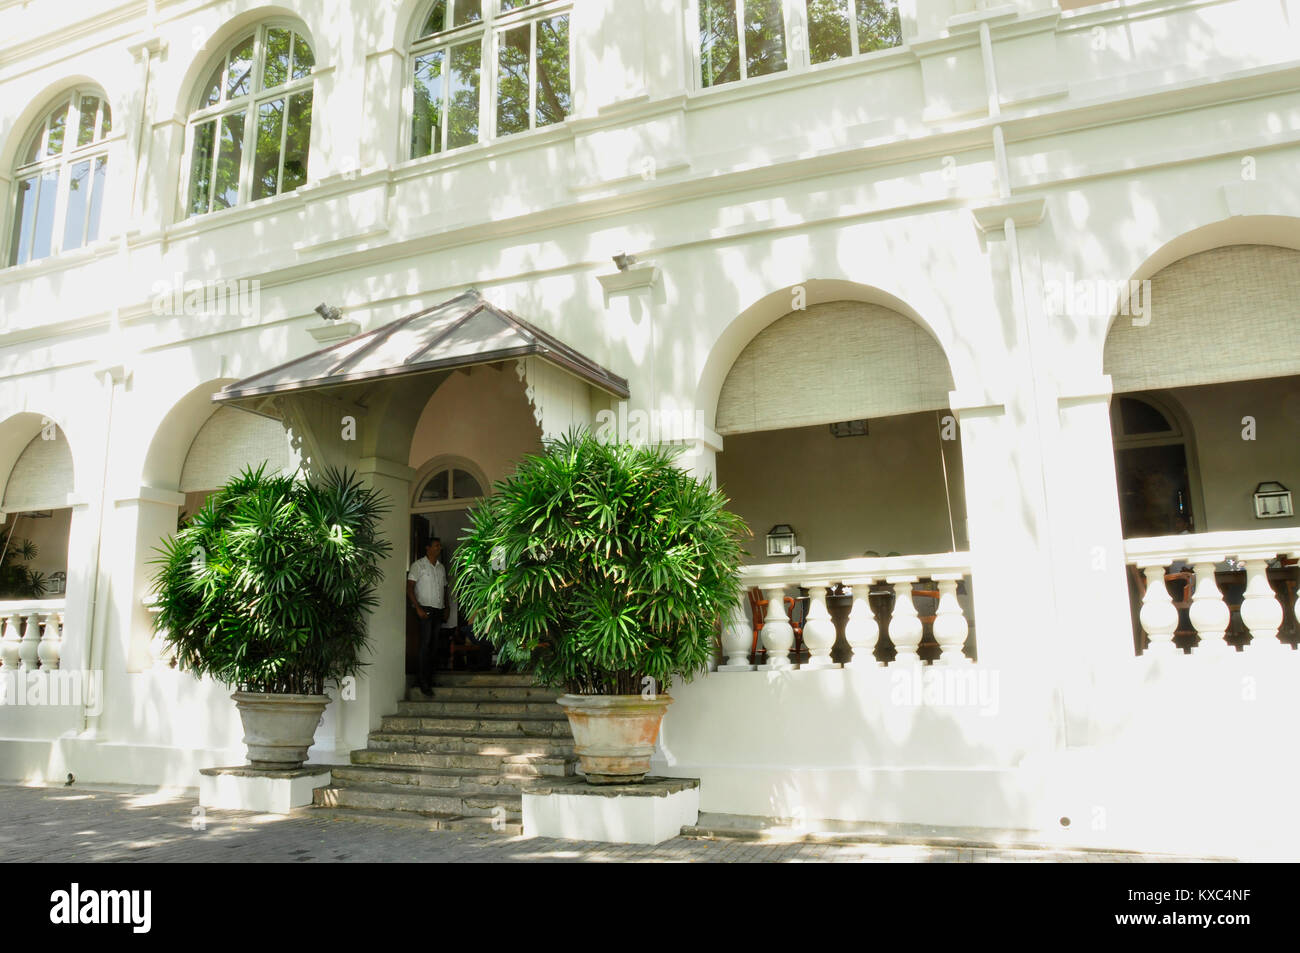 Architectural Designs From The Past Era Of Dutch Colonial Rule Sri